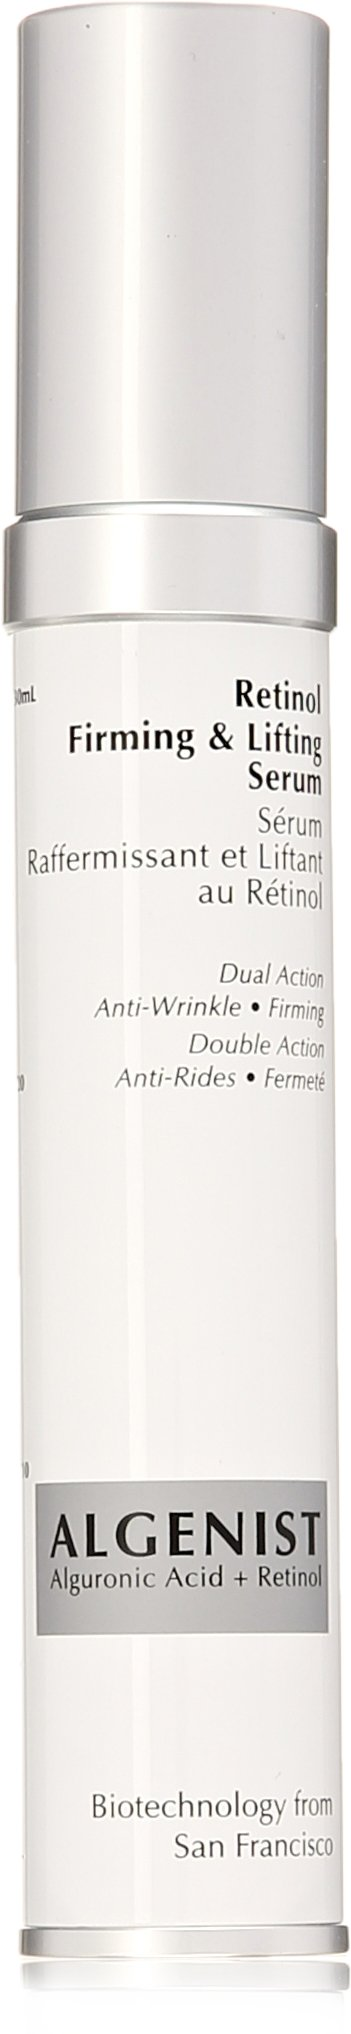 Algenist Retinol Firming & Lifting Serum, 1 oz